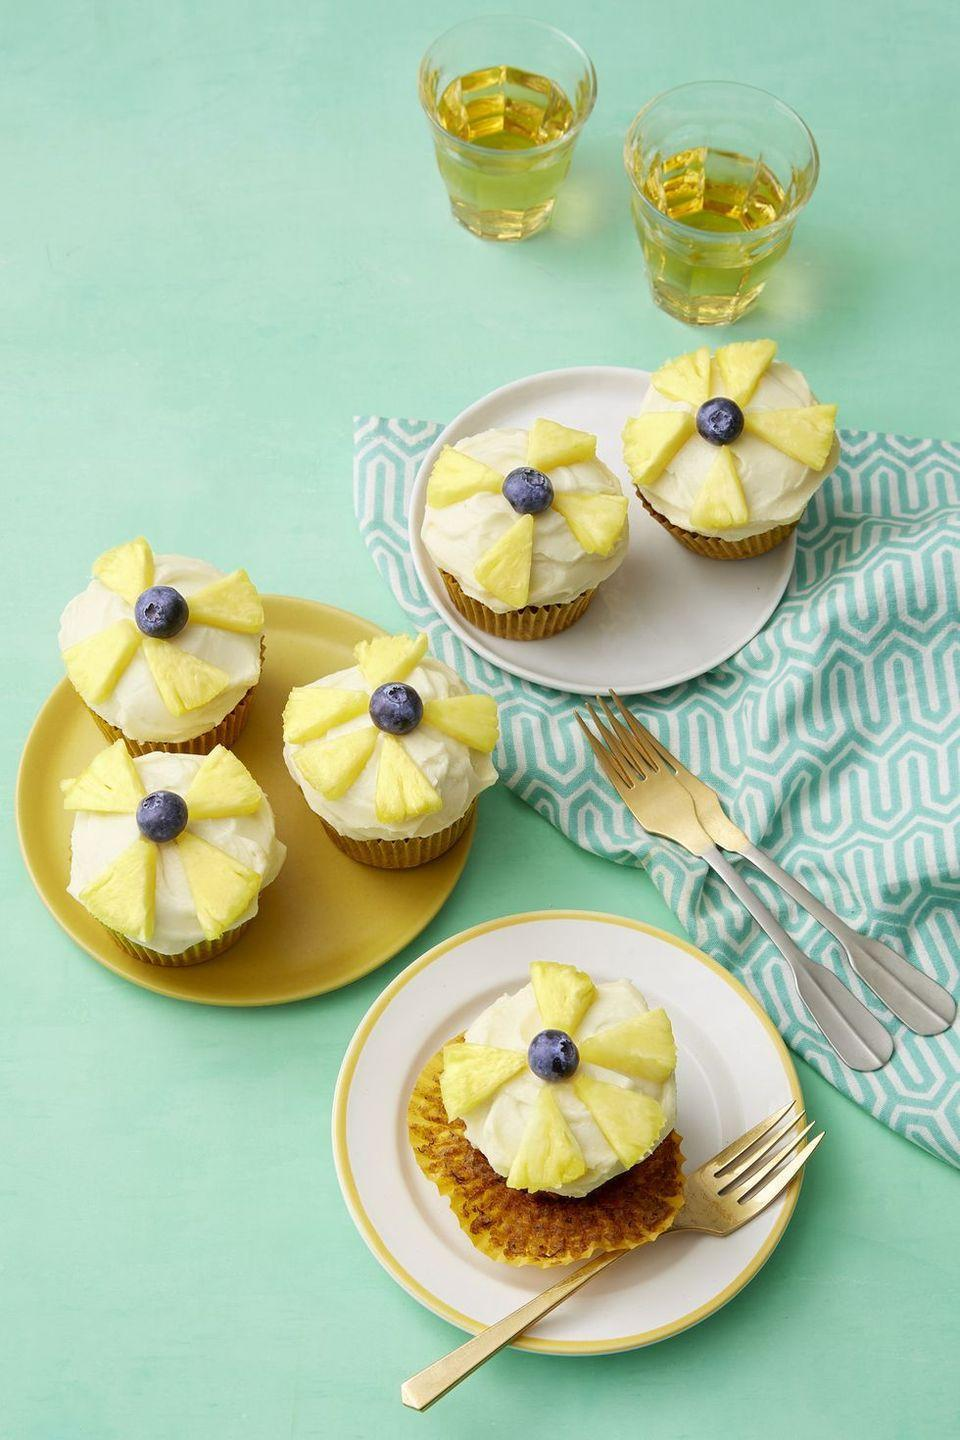 """<p>Ease any party planning stress with these tropical-flavored cupcakes (along with a fruity <a href=""""https://www.goodhousekeeping.com/cocktail-recipes/"""" rel=""""nofollow noopener"""" target=""""_blank"""" data-ylk=""""slk:cocktail"""" class=""""link rapid-noclick-resp"""">cocktail</a>).</p><p><a href=""""https://www.womansday.com/food-recipes/food-drinks/a19123934/hummingbird-cupcake-recipe/"""" rel=""""nofollow noopener"""" target=""""_blank"""" data-ylk=""""slk:Get the recipe from Woman's Day »"""" class=""""link rapid-noclick-resp""""><em>Get the recipe from Woman's Day »</em></a></p>"""